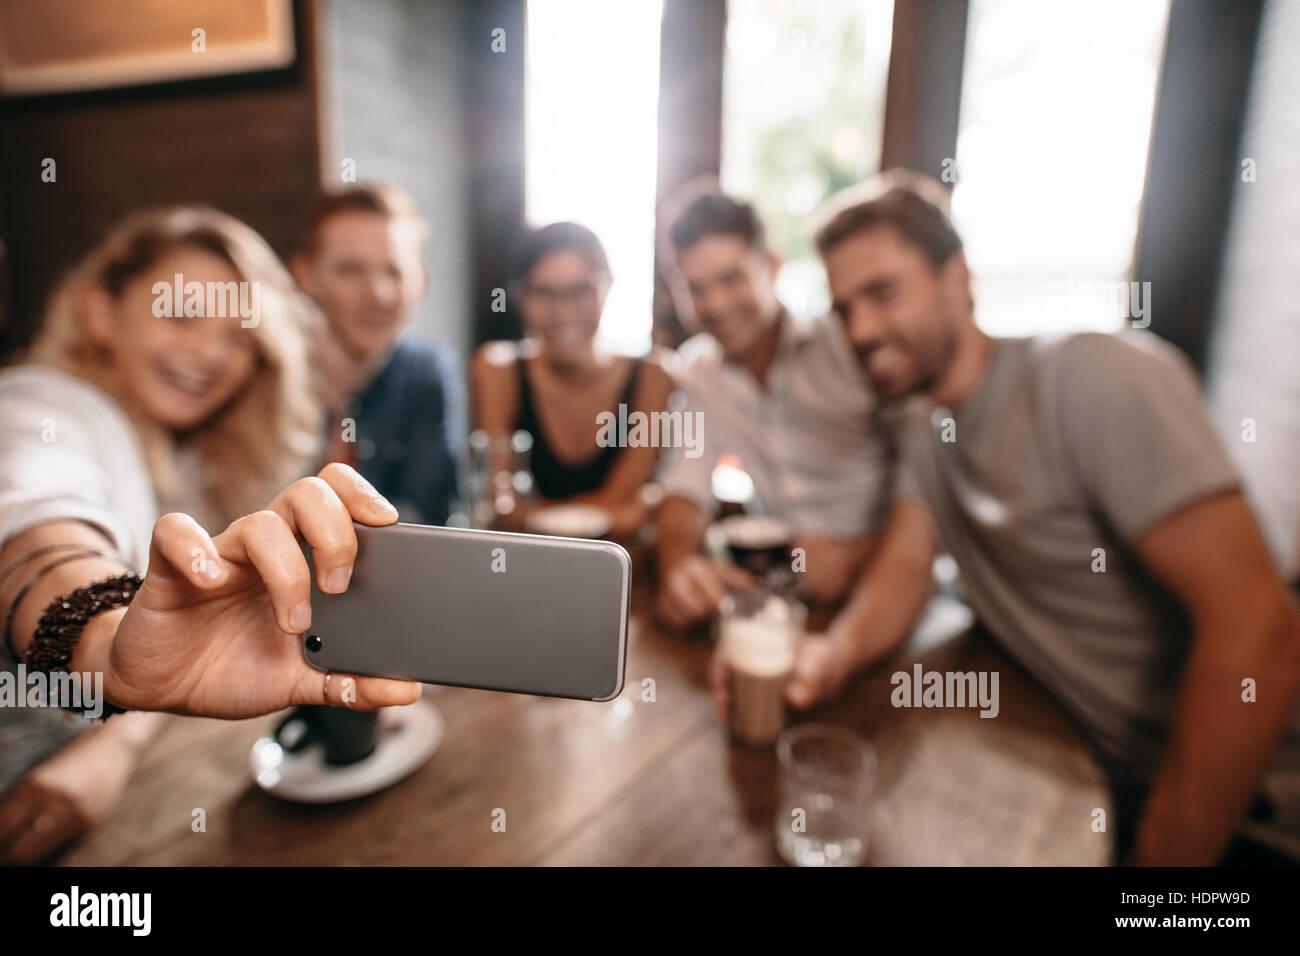 Groupe de jeunes de prendre un café à selfies. Jeunes amis au restaurant taking self portrait. Photo Stock